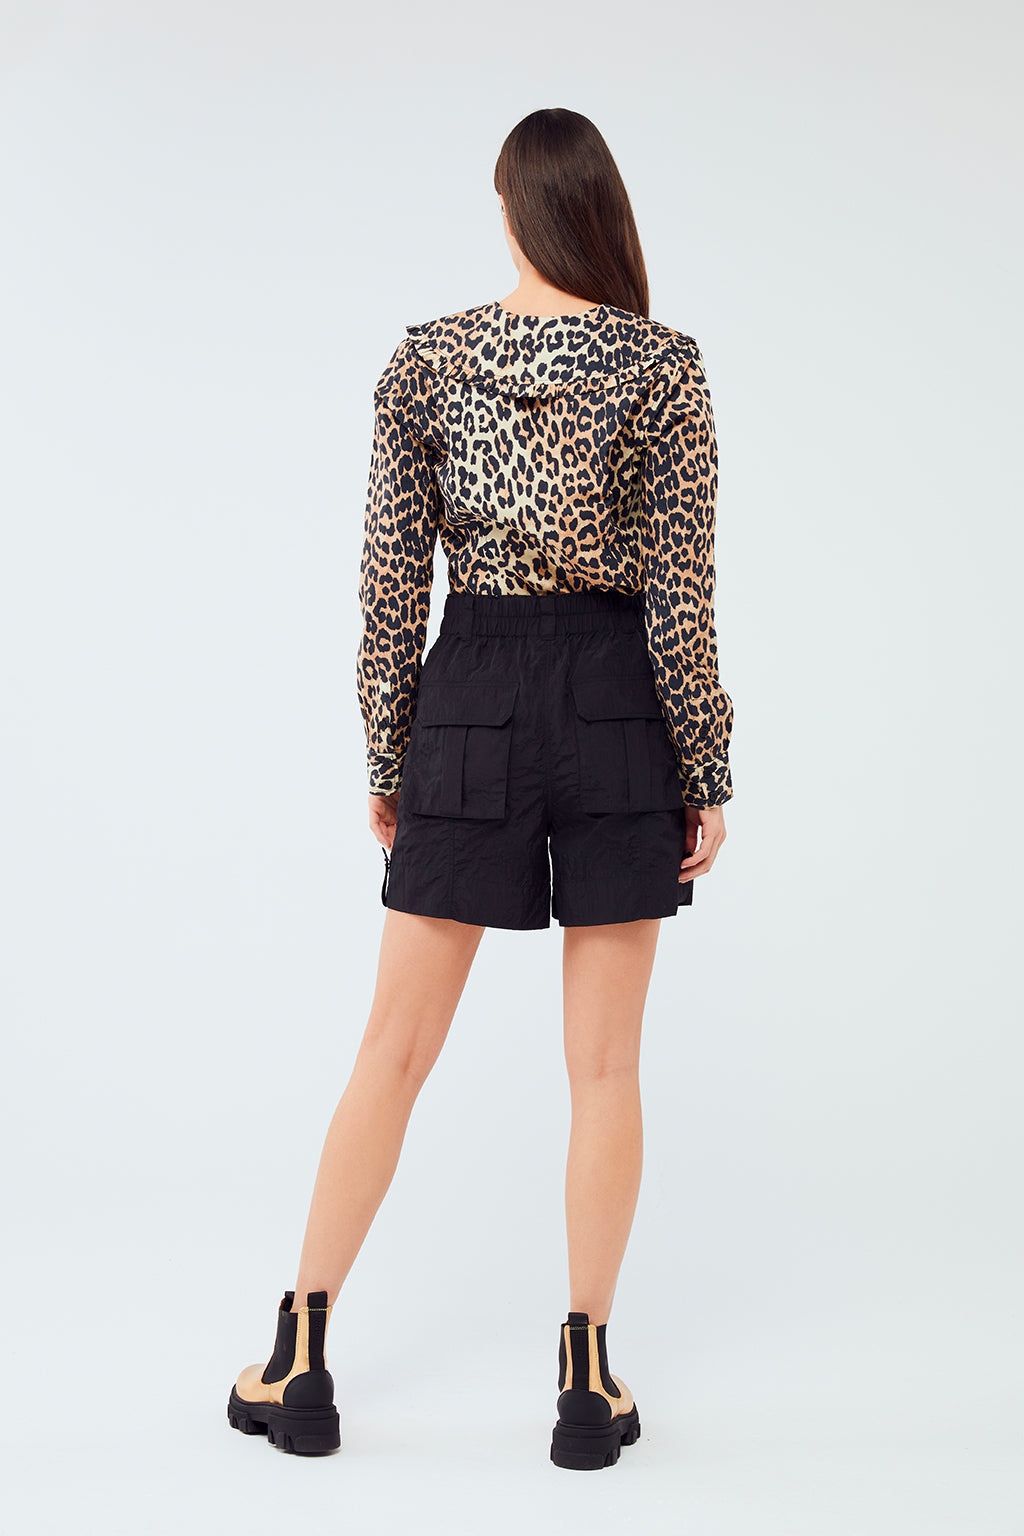 Ganni - Printed Cotton Poplin Shirt | Leopard